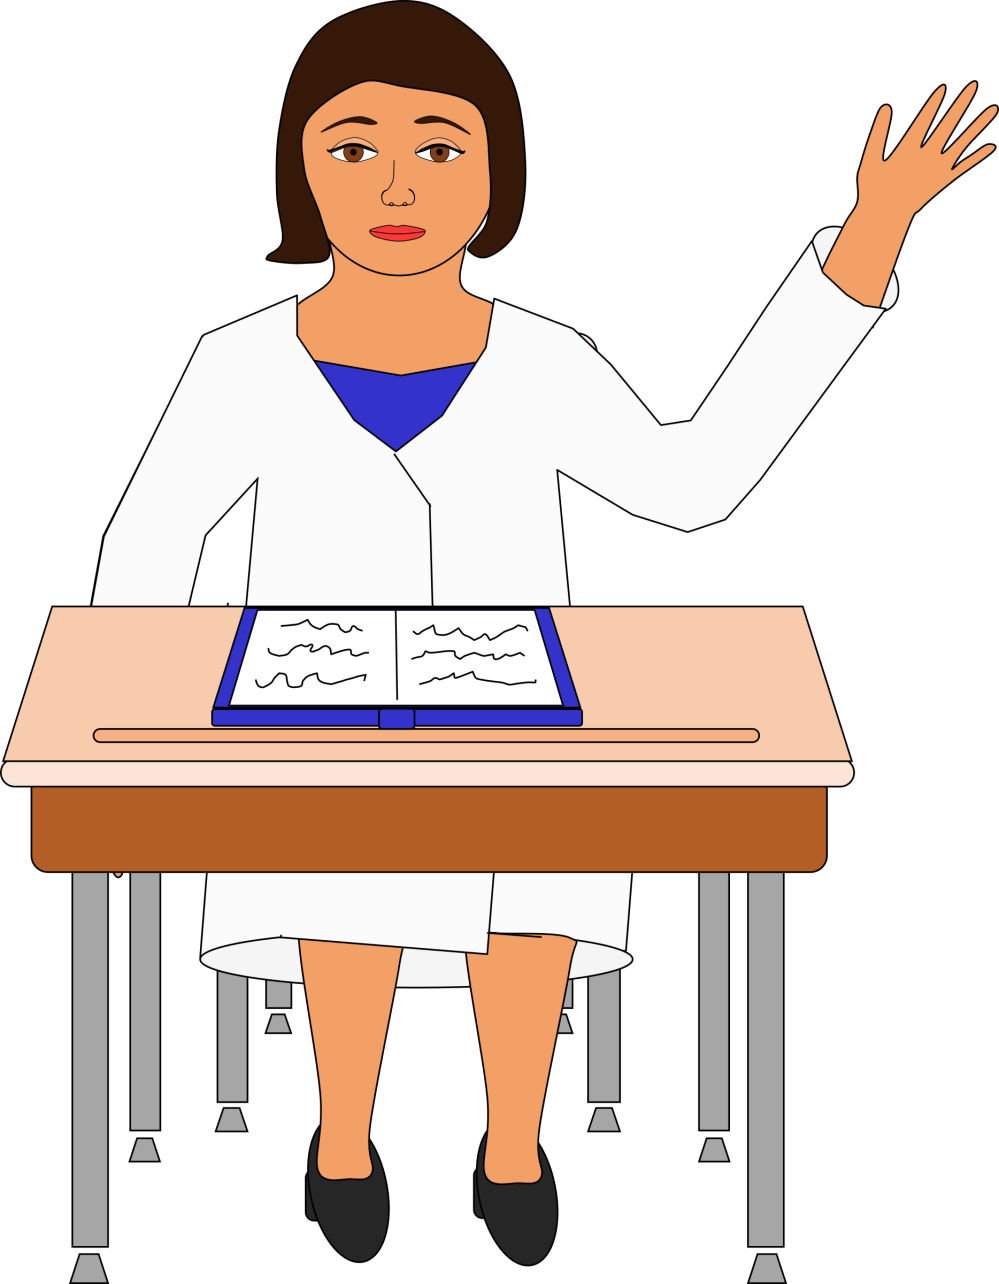 medium resolution of young girl raising hand in class clipart school